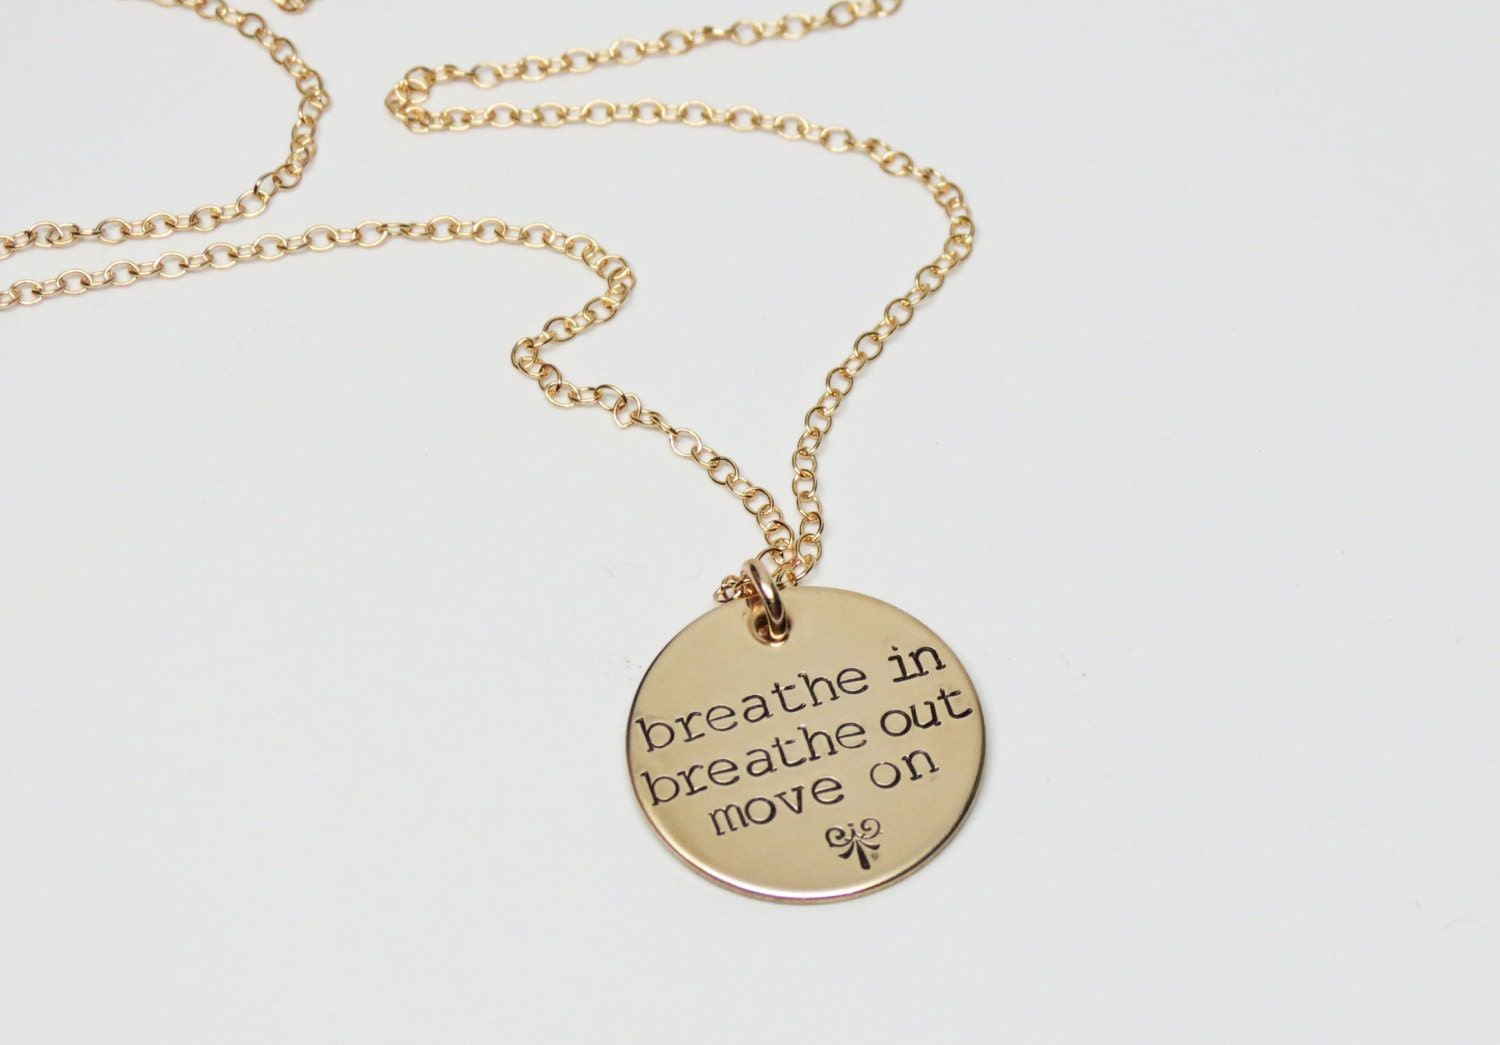 breathe in breathe out move on necklace gold jewelry